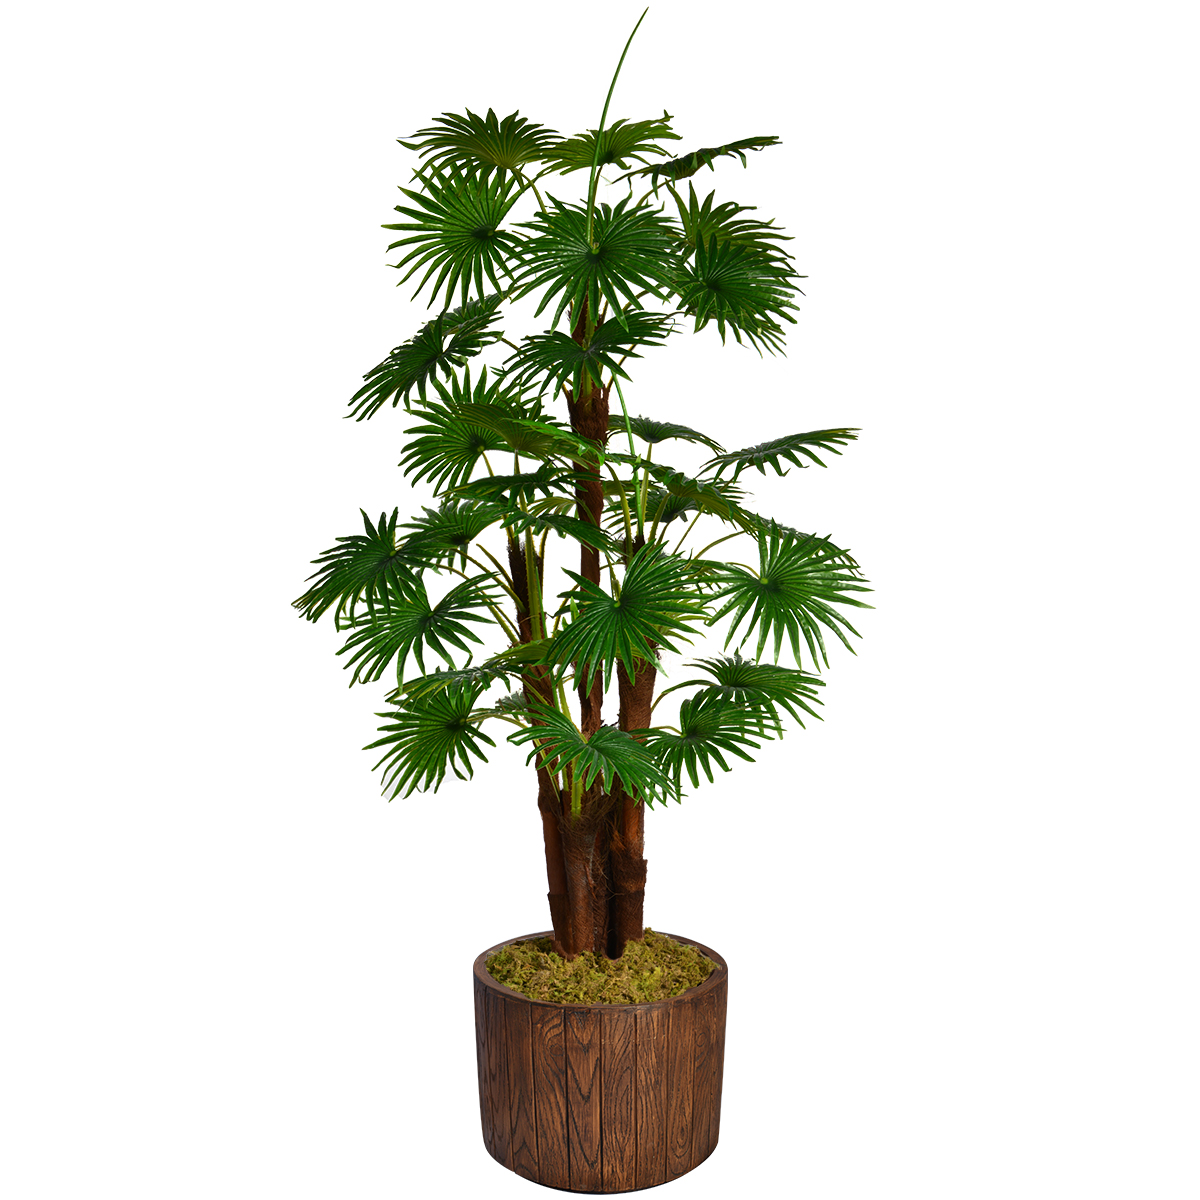 """70.8"""" Tall Fan Palm Tree Artificial Indoor/ Outdoor Décor Faux Burlap Kit and Fiberstone Planter By Minx NY"""